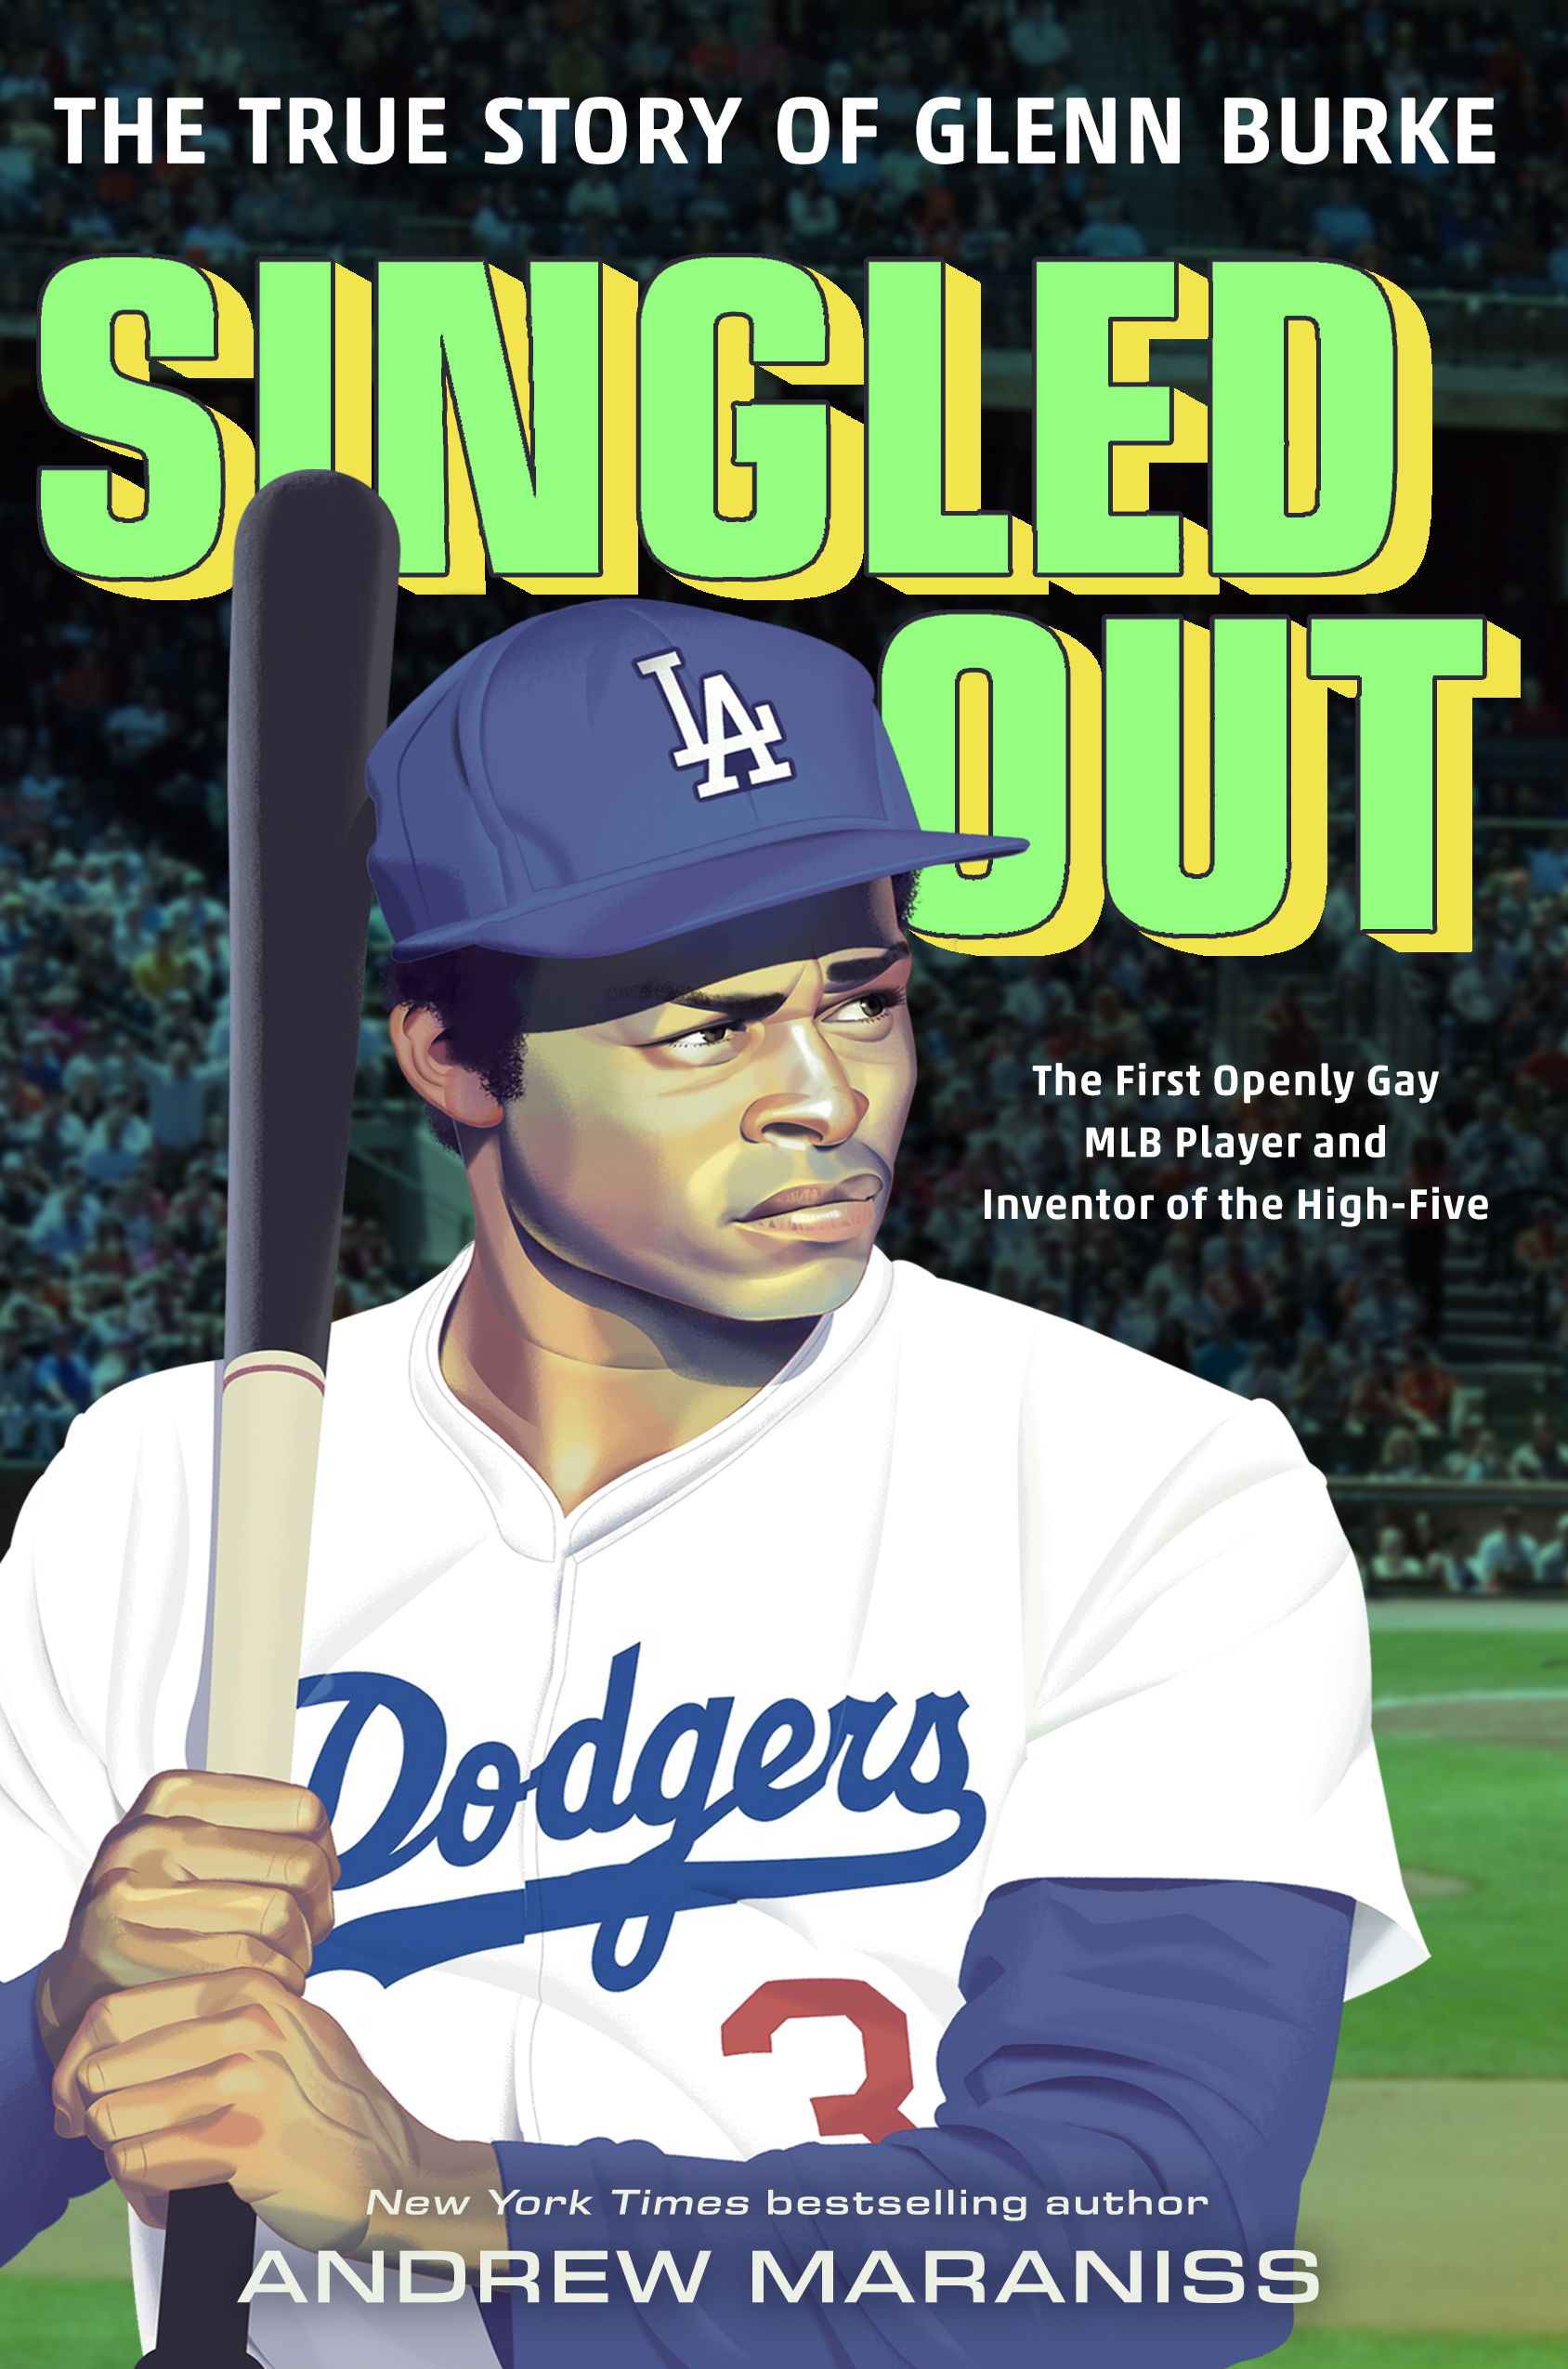 Glenn Burke wears a Dodgers uniform at bat on the cover of this new biography.